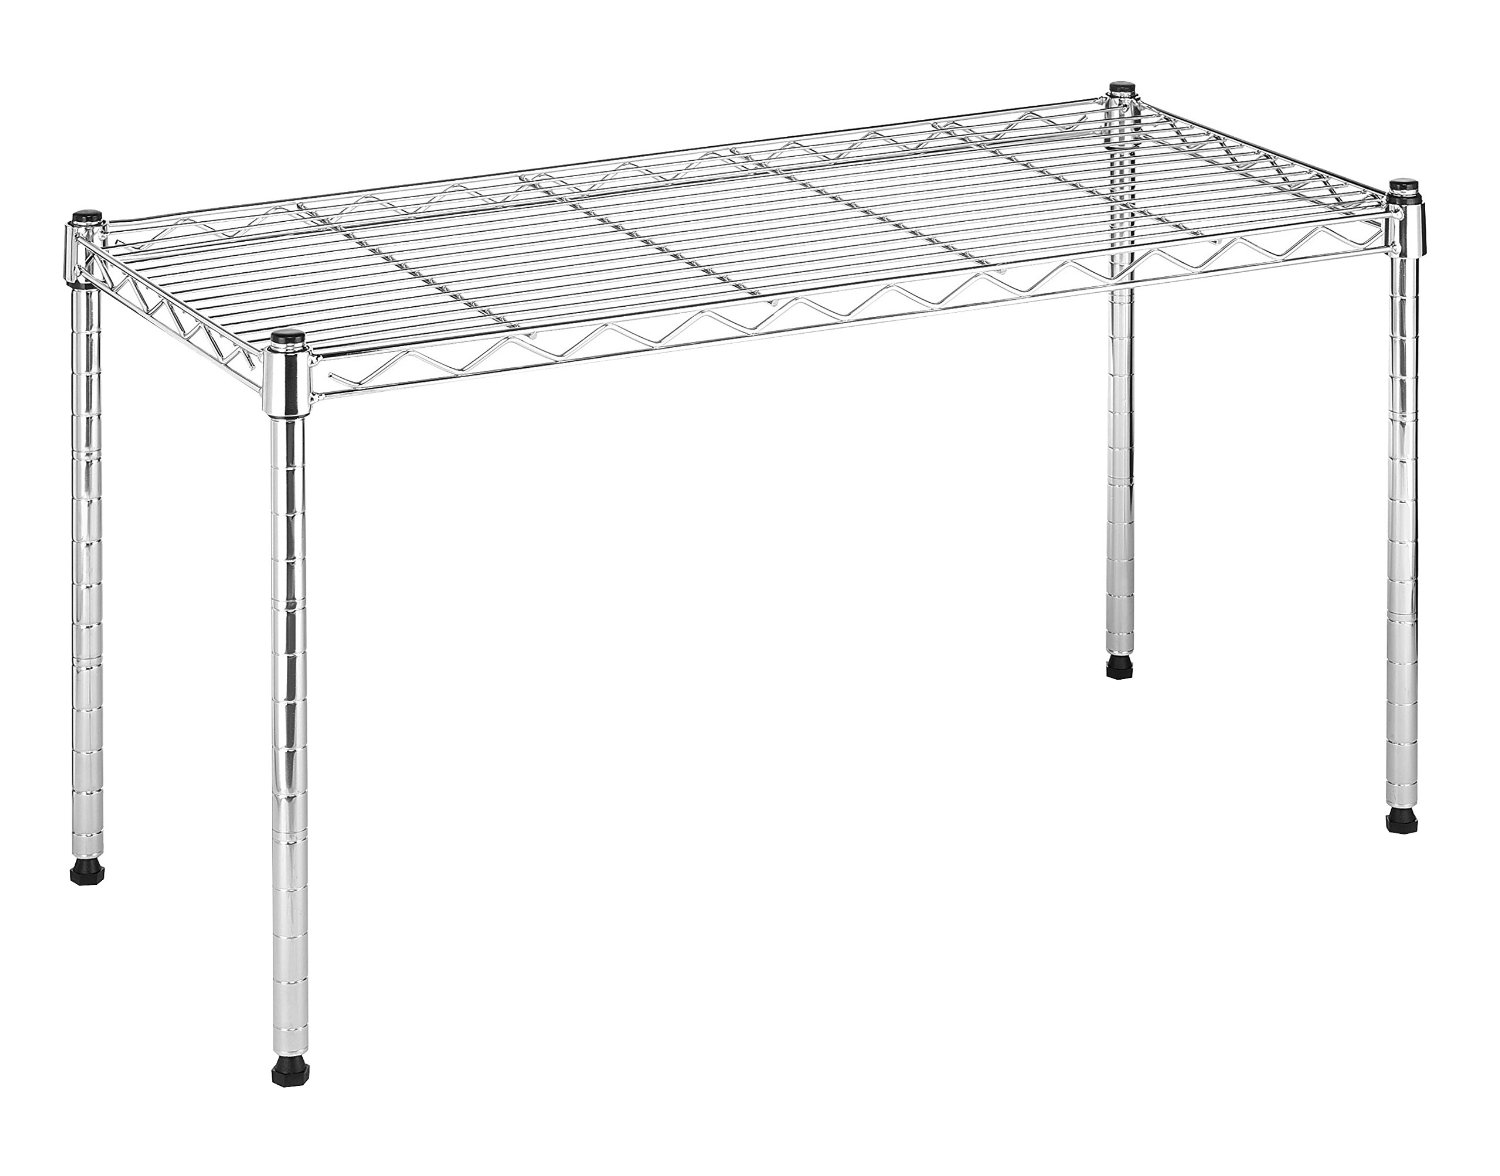 6054-585 Commercial-Grade Steel Supreme Wide Stacking Shelf, 14 x 30 x 16-Inch, Chrome SUPREME WIDE STACKING... by